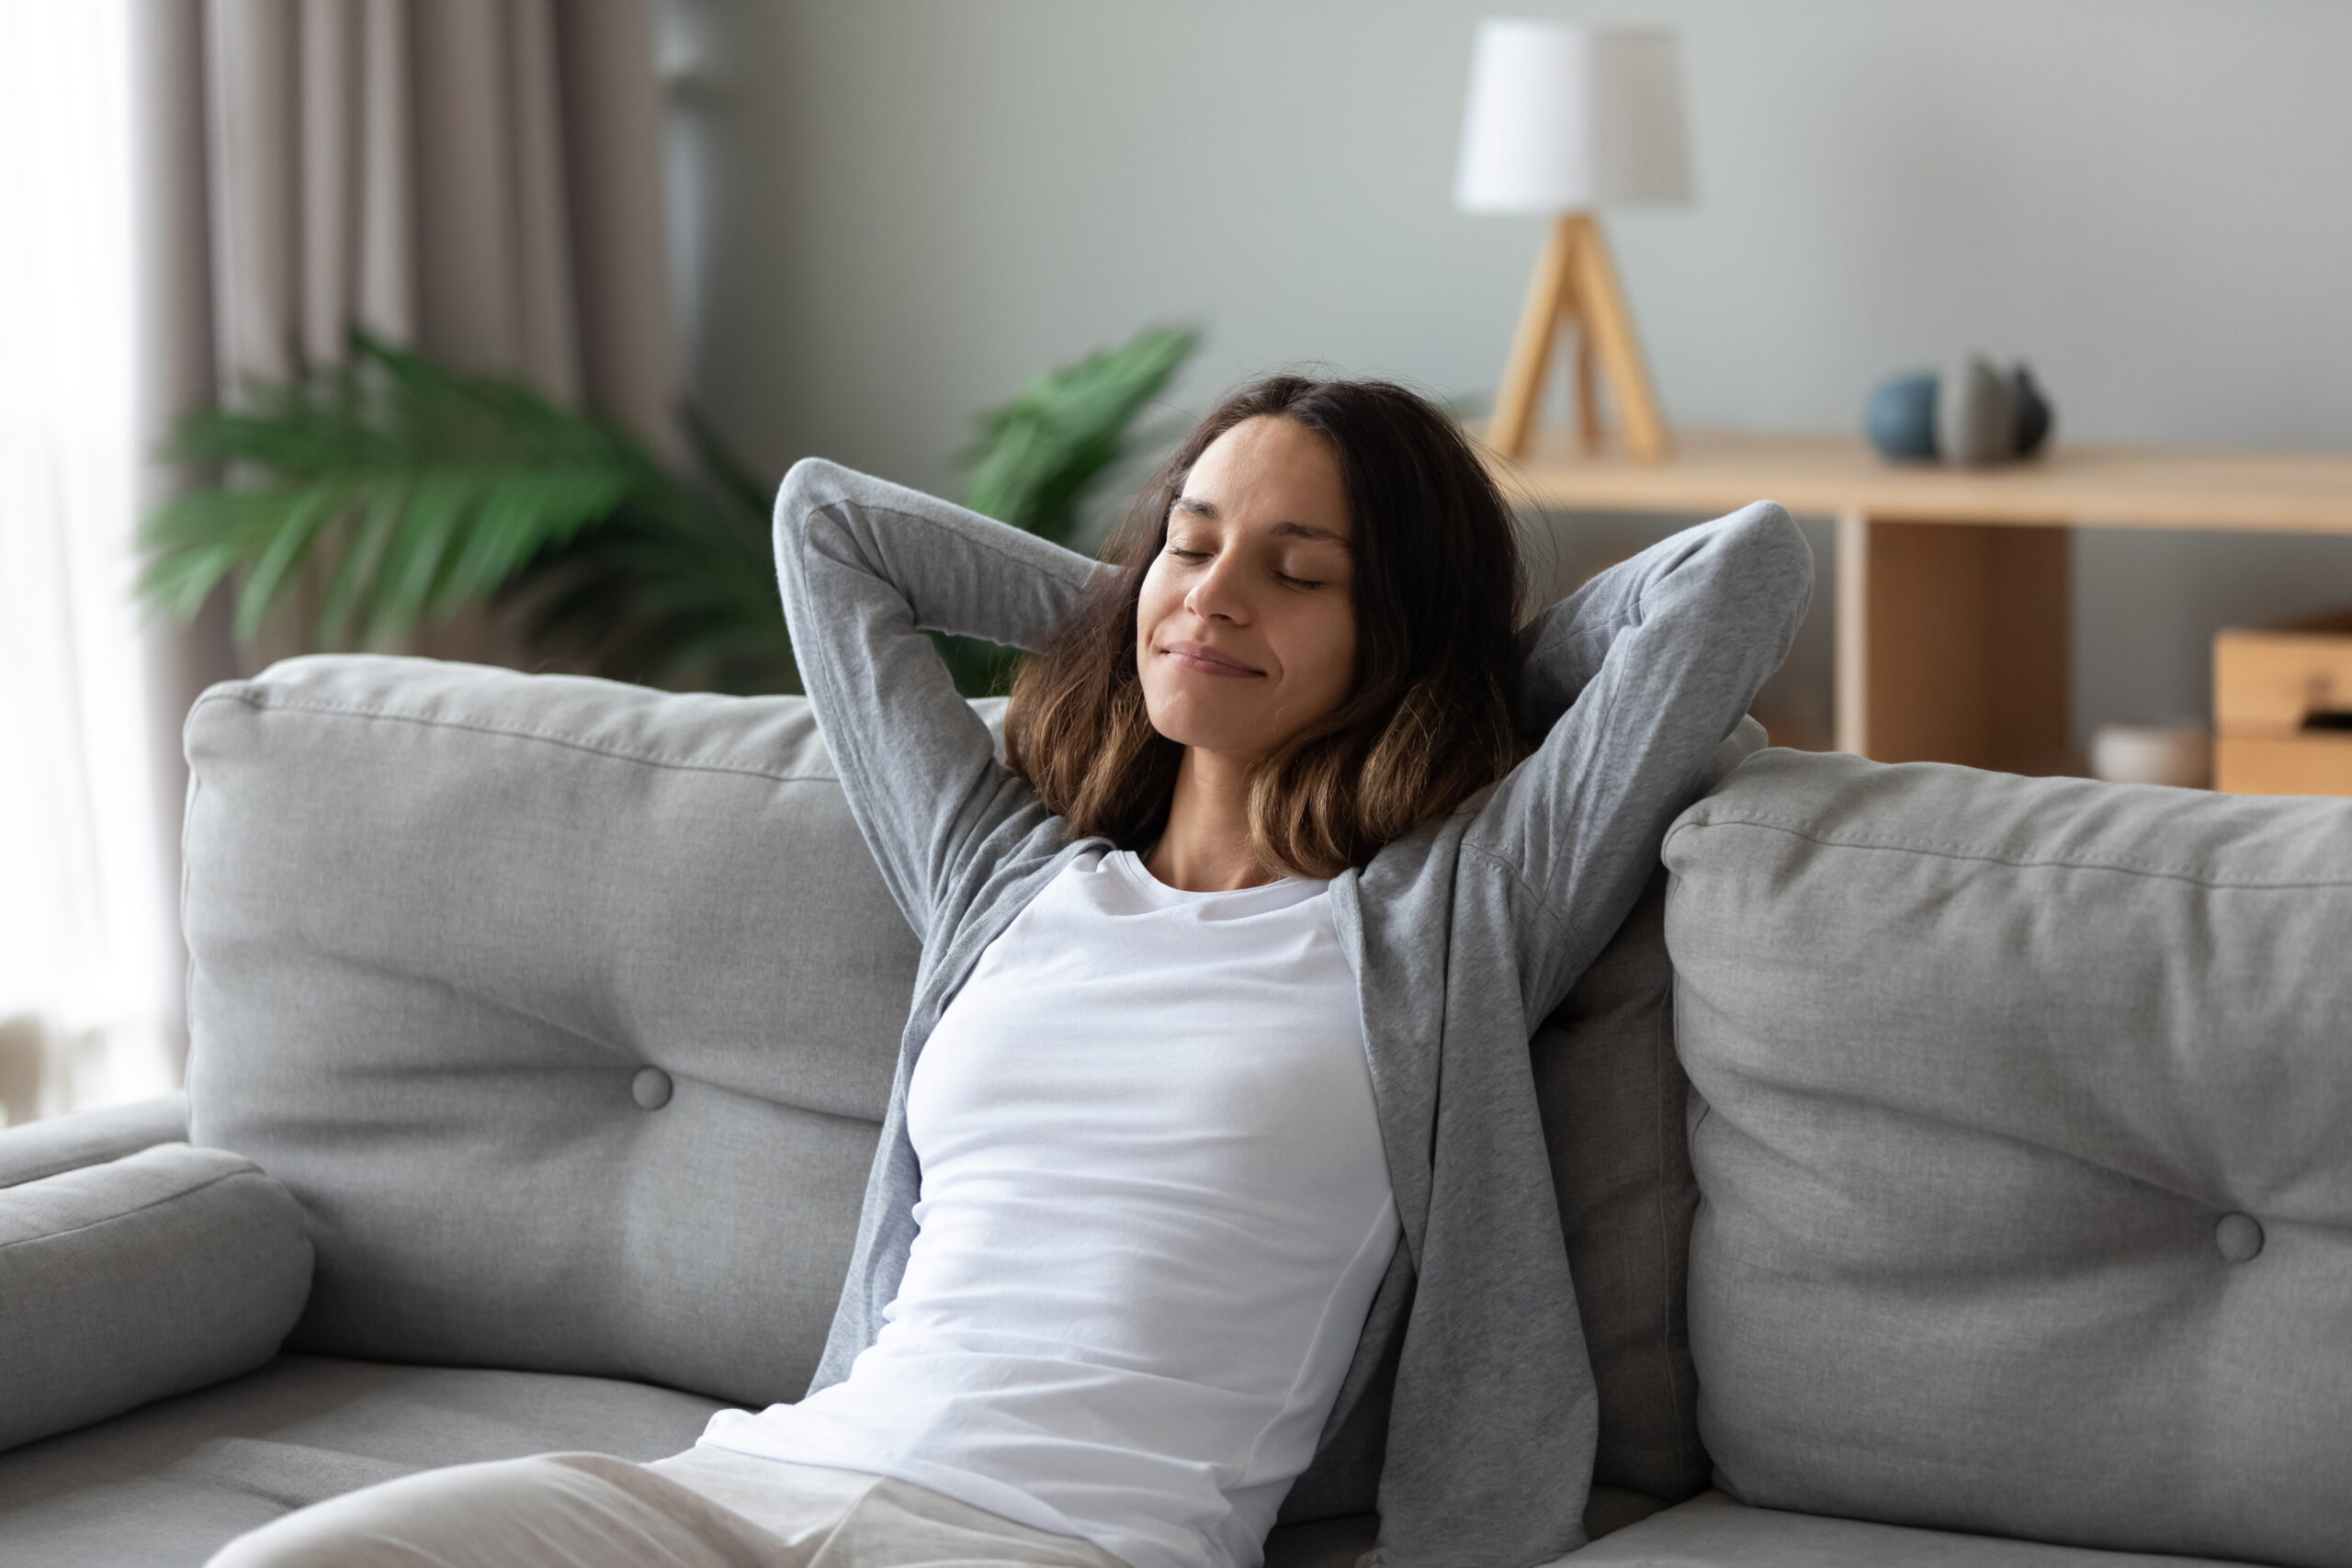 Tranquil smiling biracial millennial woman leaning on sofa, enjoying stress free weekend time at home. Mindful happy mixed race young girl relaxing in living room, meditating, visualizing future.